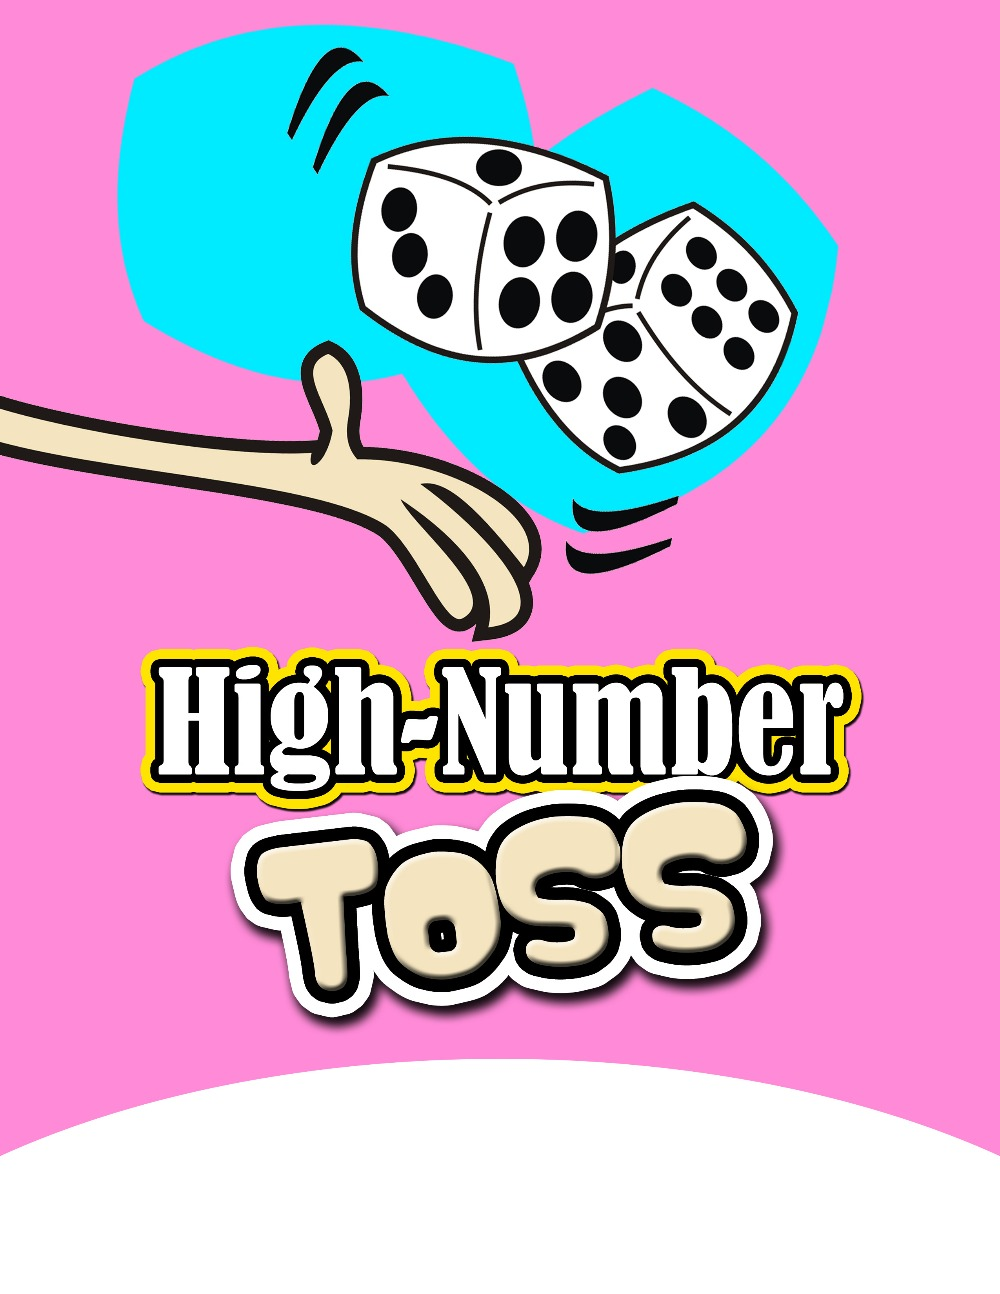 High-Number Toss